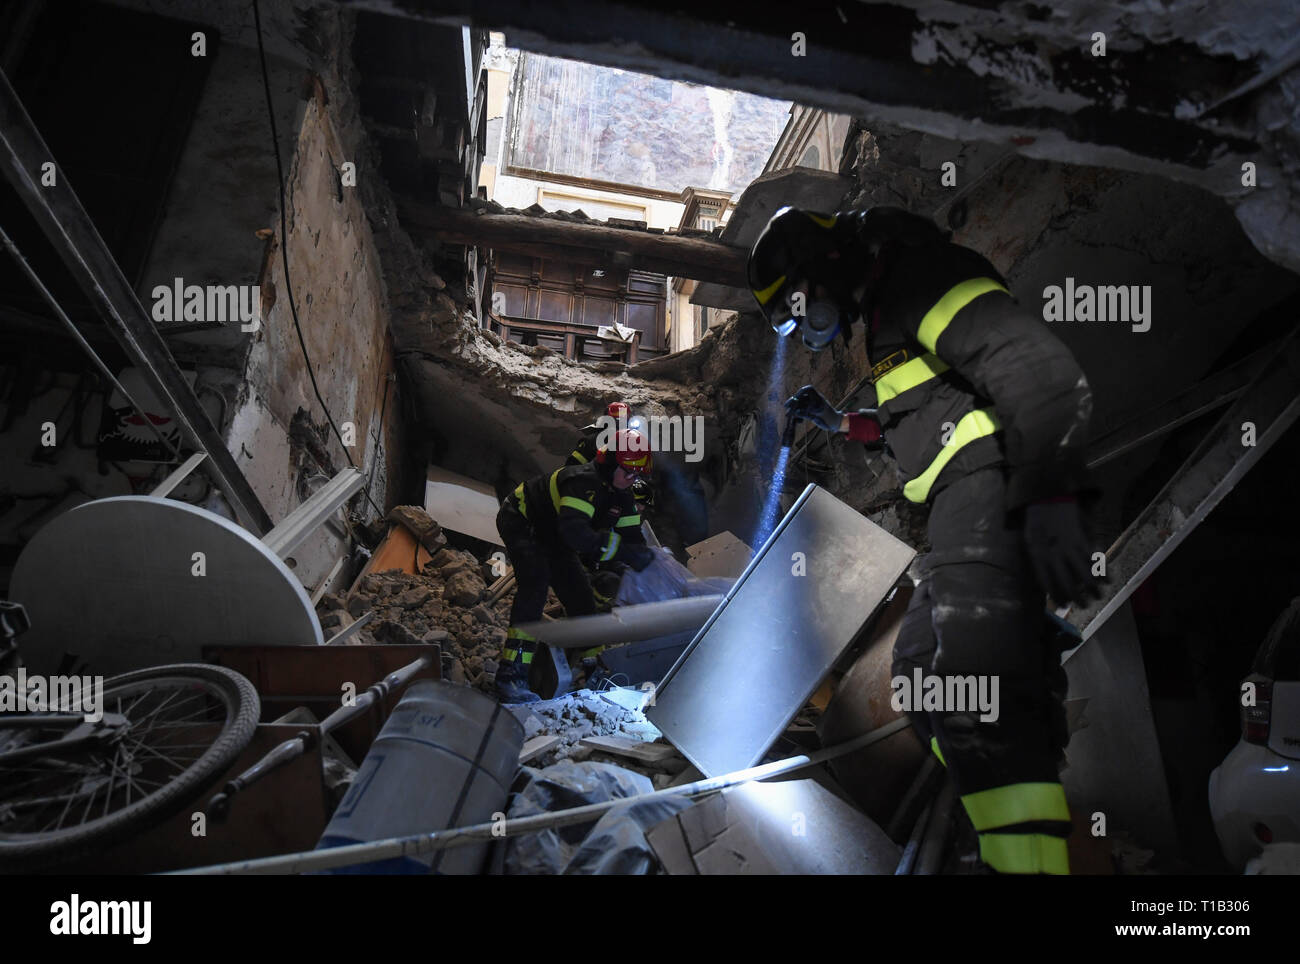 Naples, Italy. 25th Mar 2019. Intense work, with the support of the Fire Brigade, made it possible to recover the remains underlying the plaque dedicated to the co-founder of the monumental complex of the Incurables Maria D'Ayerba. After the collapse occurred at dawn on Sunday 24 March 2019 in the church of Santa Maria del Popolo degli Incurabili (year 1530), the remains had in fact remained among the debris below the large tombstone. 25/03/2019, Naples, Italy Credit: Independent Photo Agency Srl/Alamy Live News Stock Photo